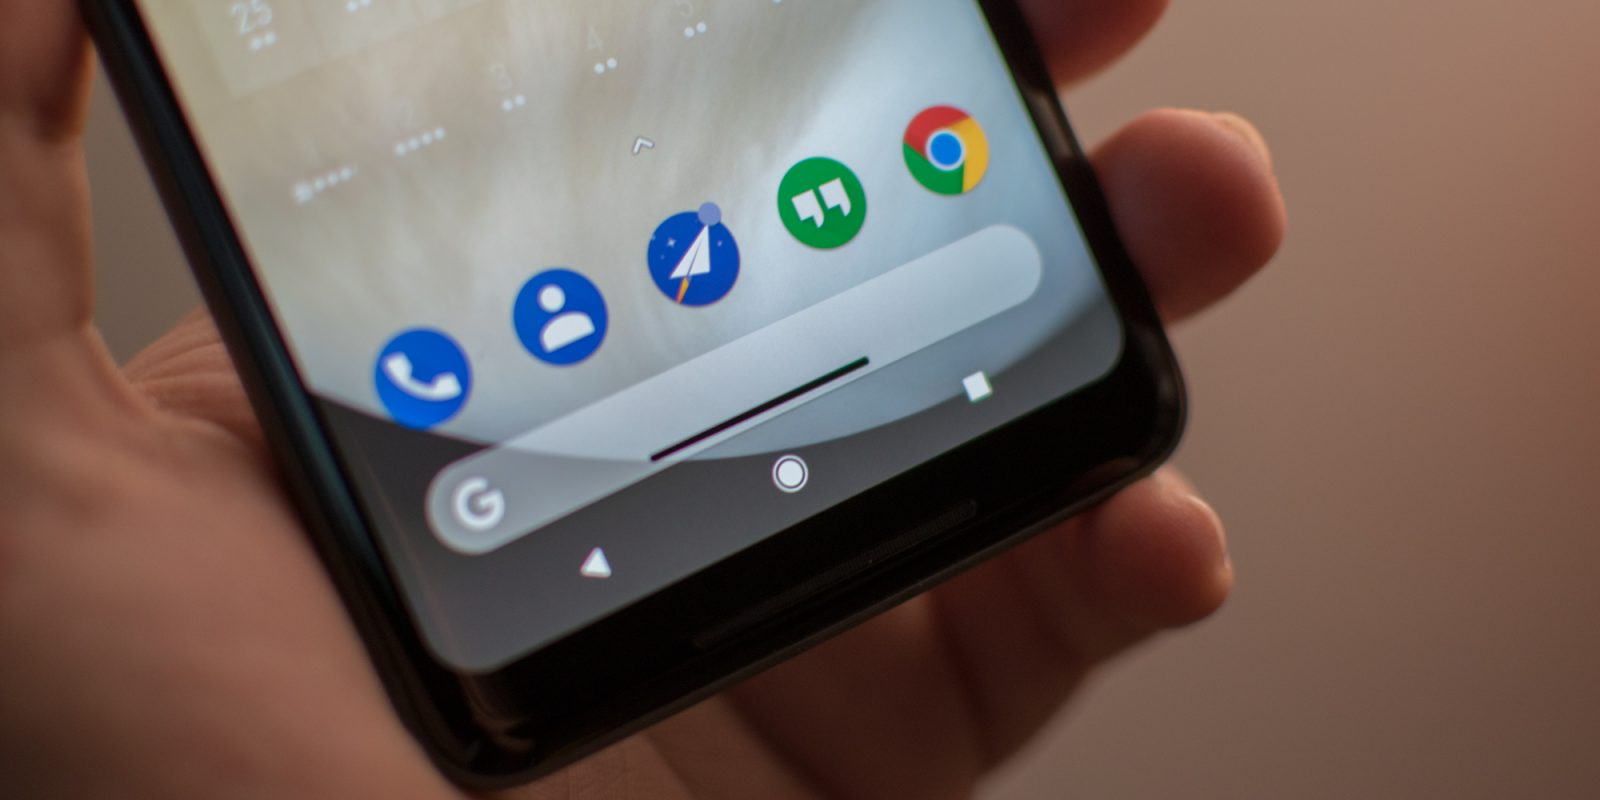 How to get iPhone X Gestures on any Android Phone 1